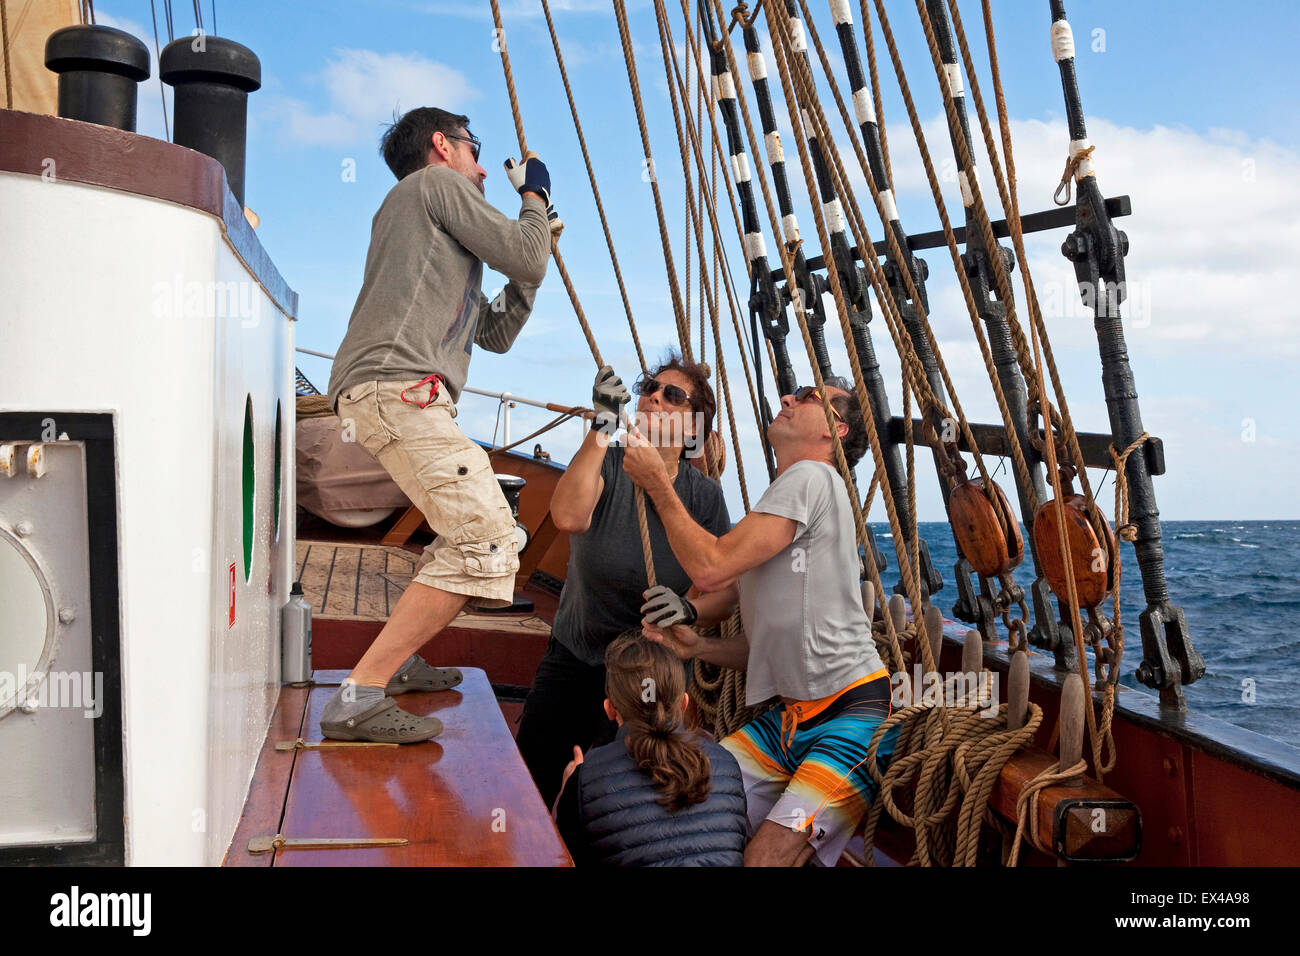 Sailors setting sail on board of the Oosterschelde, three-masted topsail schooner sailing the Atlantic Ocean near - Stock Image